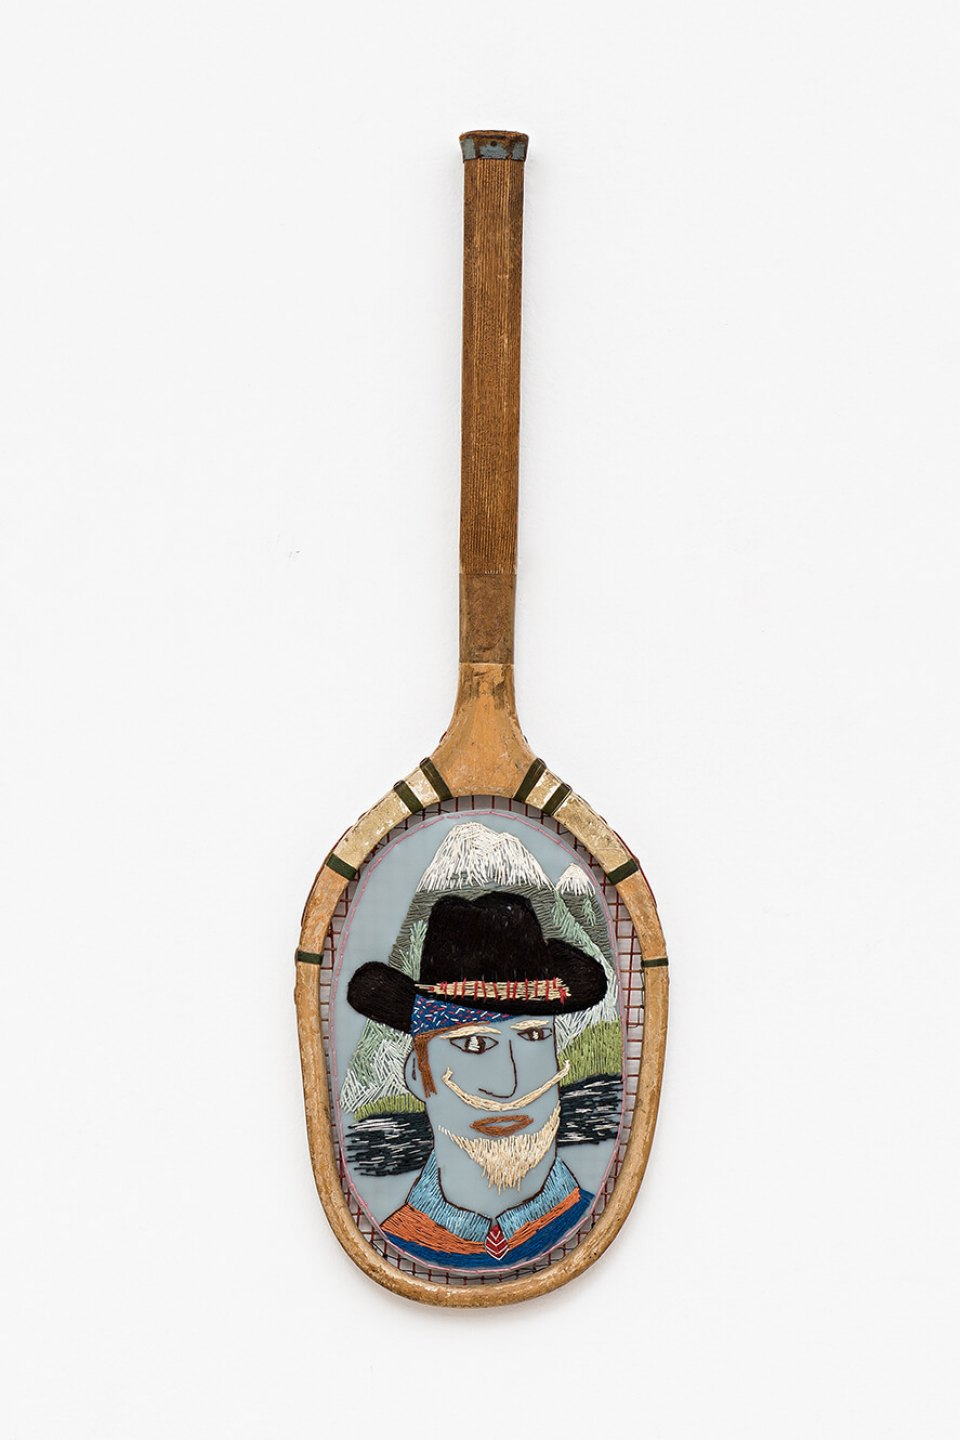 f. marquespeteado, <em>Billy the Kid,</em> 2004, PVC hand-embroidered on tennis racquet, 68,5 × 22 cm - Mendes Wood DM